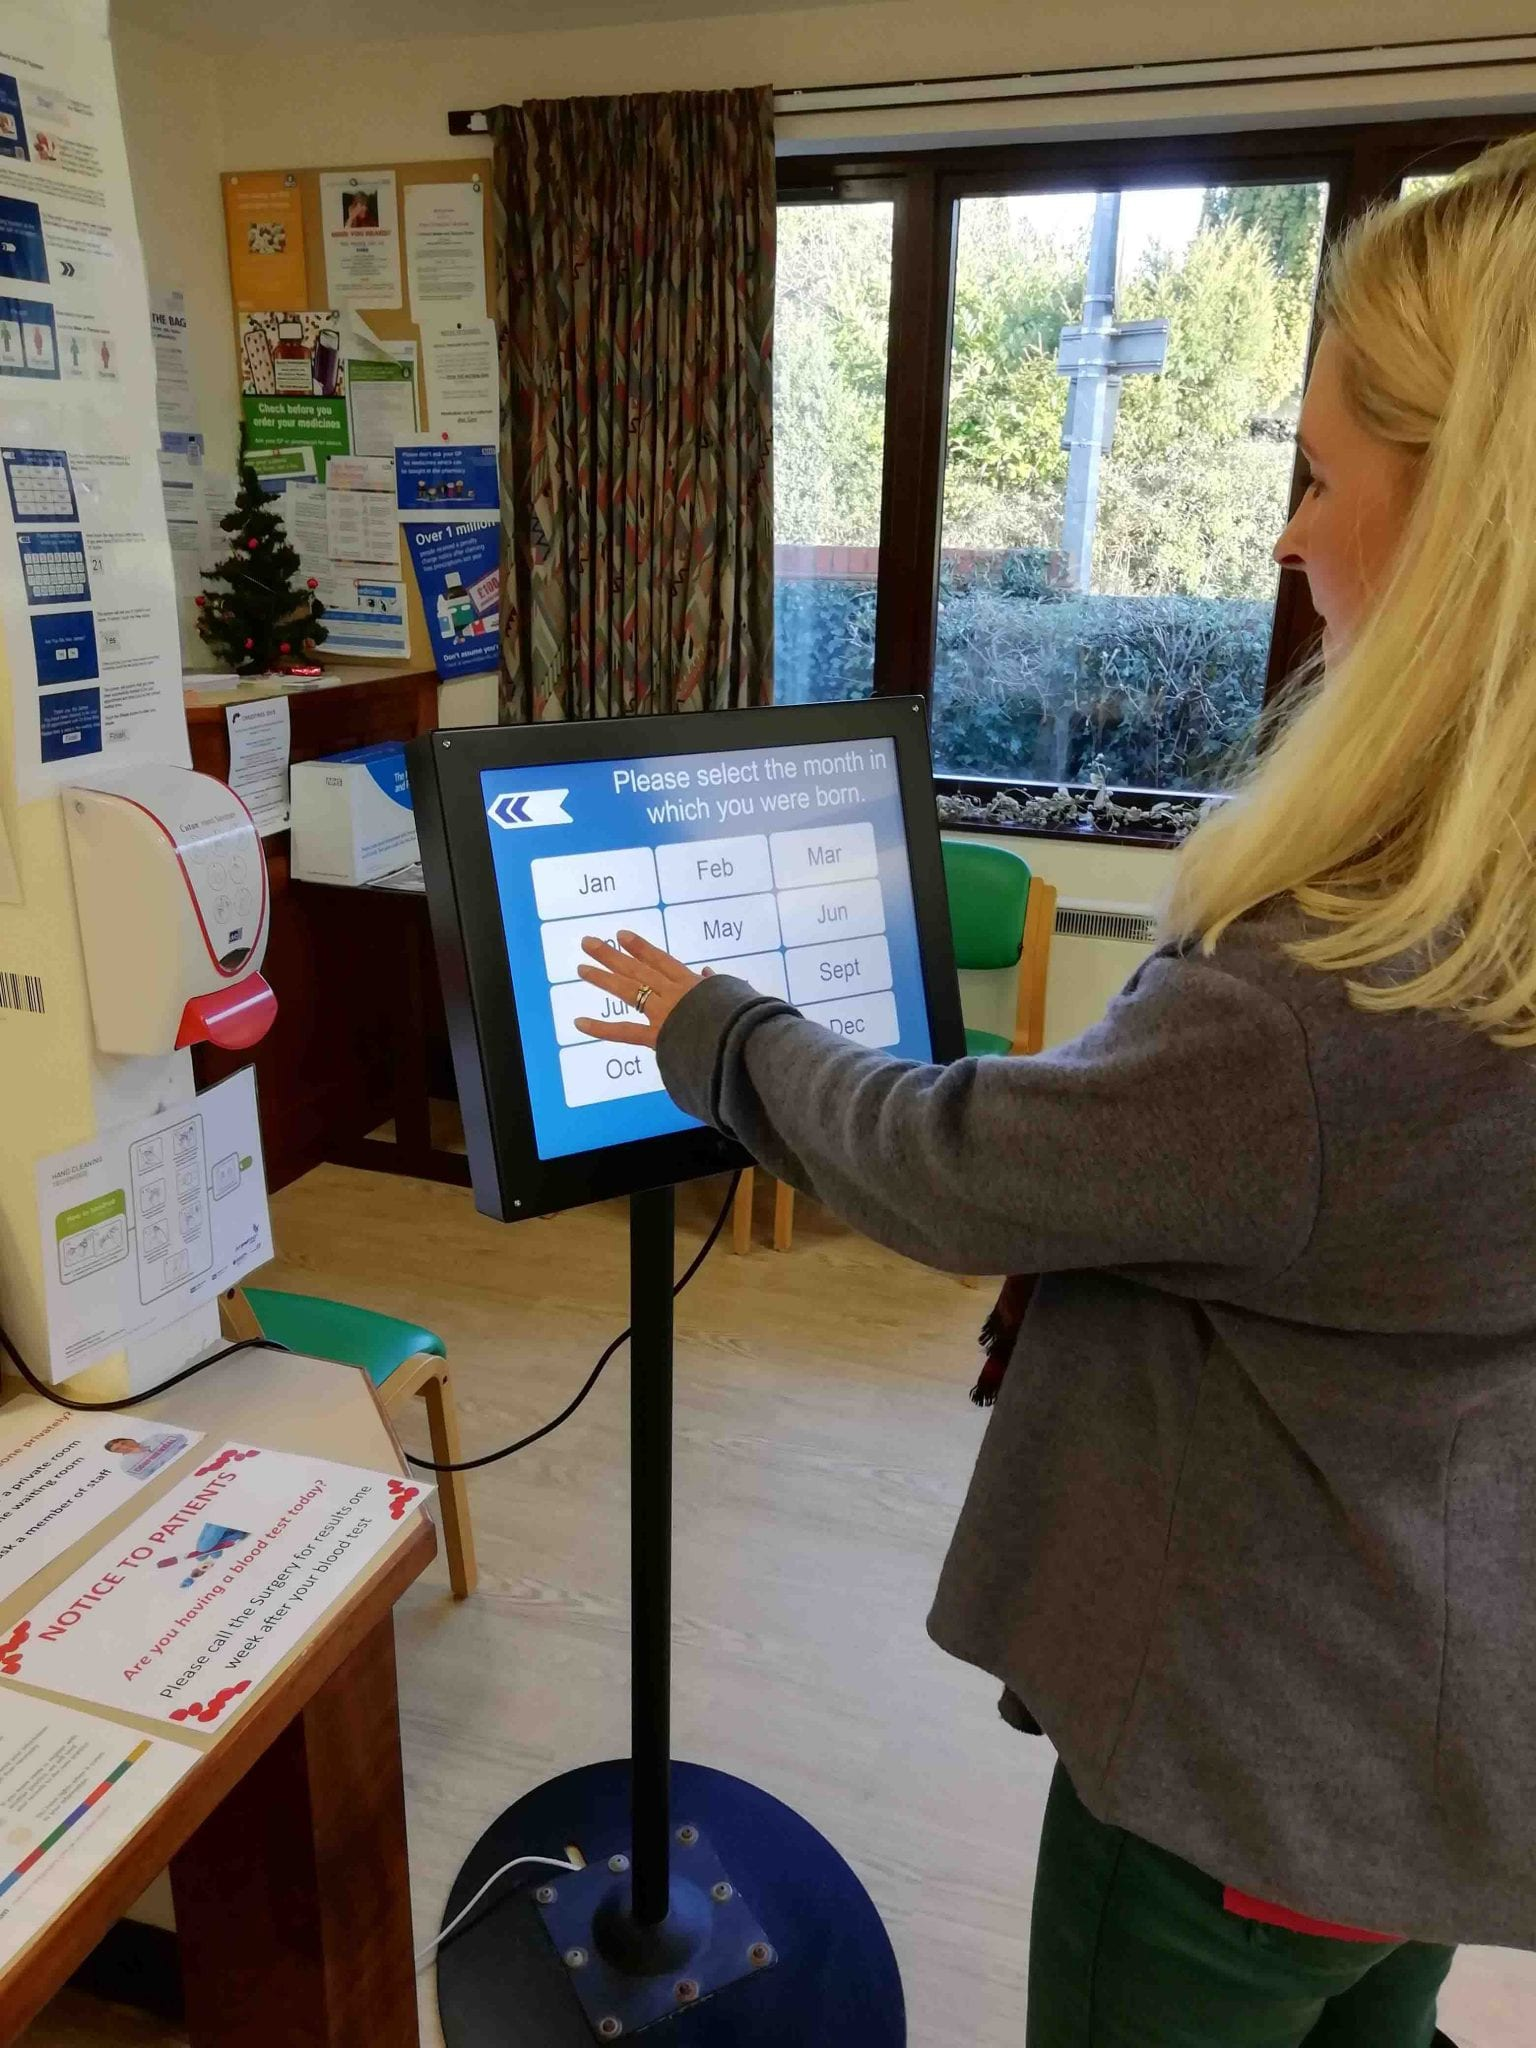 Zytronic touch sensors used in check in screen at a doctors surgery